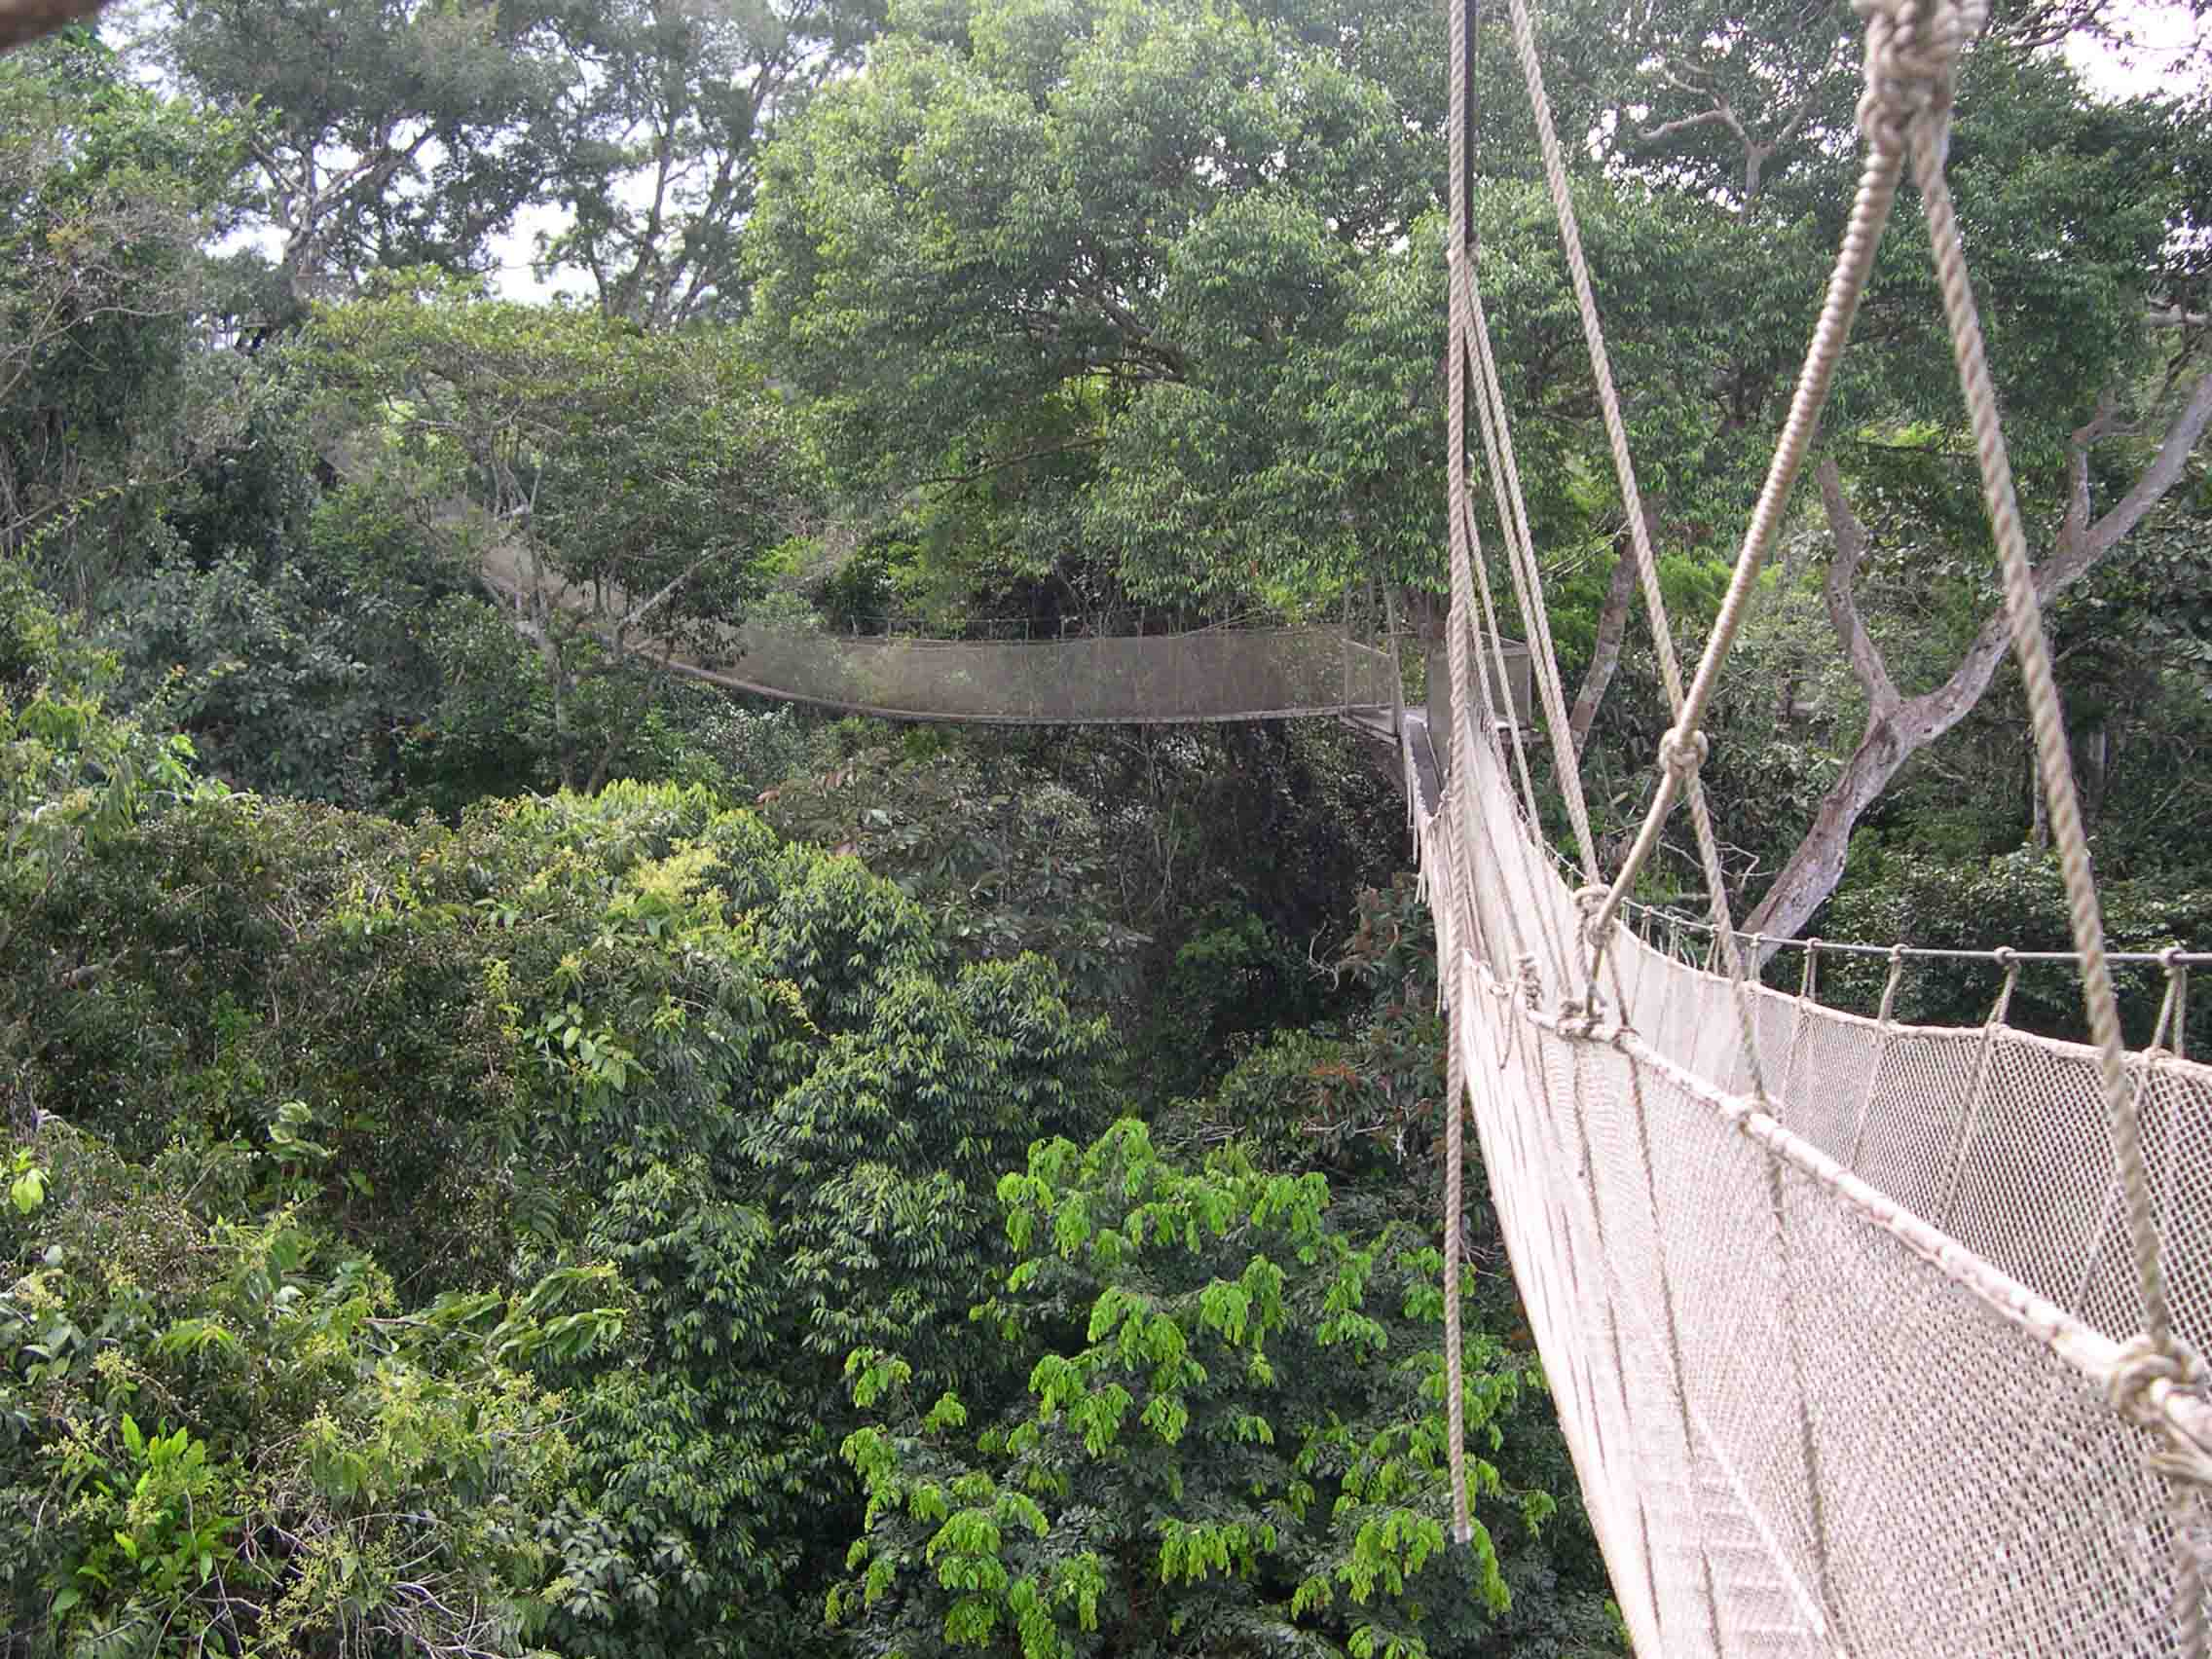 Amazon canopy walkway Peru Jul 2004 & Amazon canopy walkway Peru Jul 2004 u2013 J. Richard Abbott u2013 Botanist